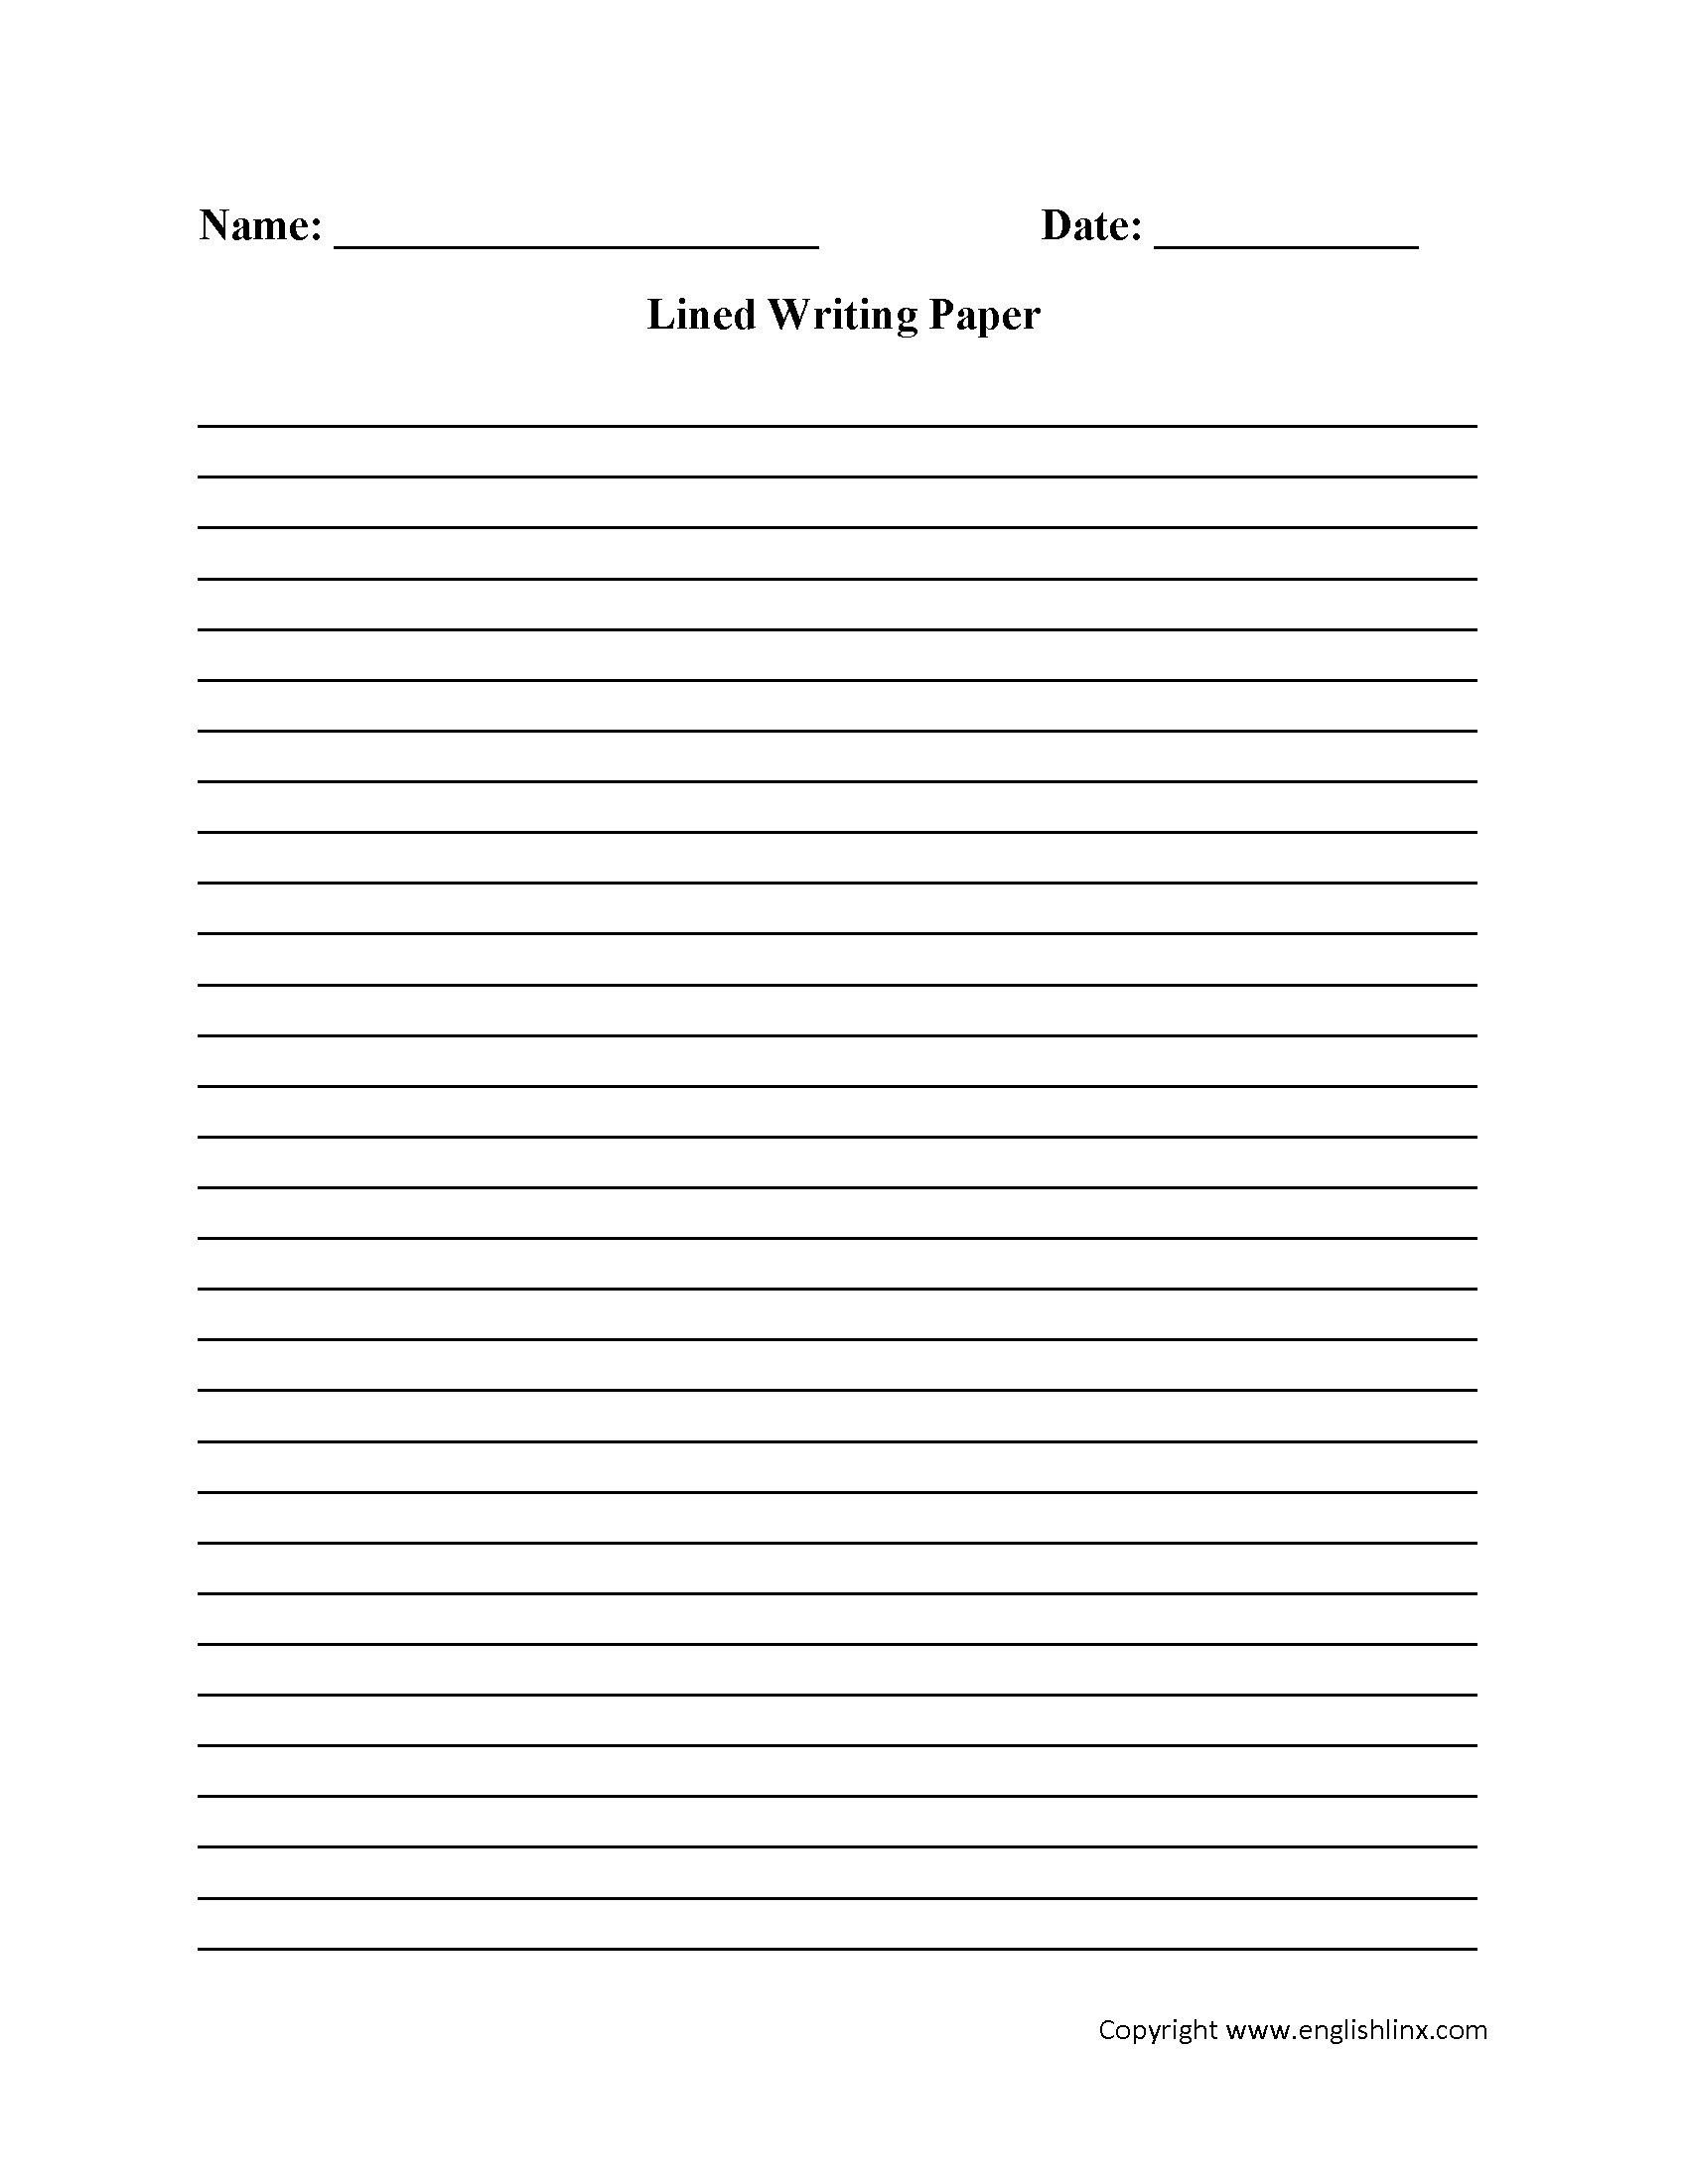 Writing Worksheets   Lined Writing Paper Worksheets - Free Printable   Printable Writing Worksheets